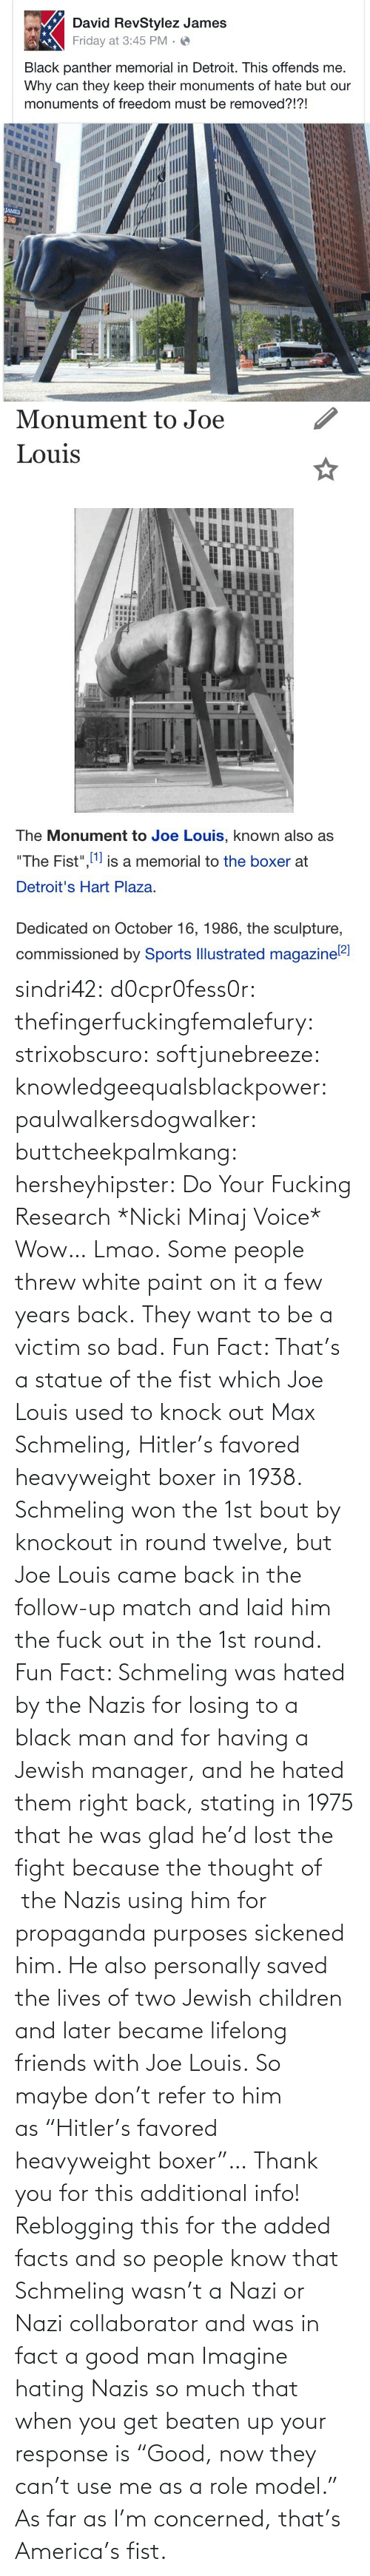 "Fucking: sindri42:  d0cpr0fess0r:  thefingerfuckingfemalefury:  strixobscuro:  softjunebreeze:  knowledgeequalsblackpower:  paulwalkersdogwalker:   buttcheekpalmkang:   hersheyhipster:  Do Your Fucking Research *Nicki Minaj Voice*    Wow… Lmao.   Some people threw white paint on it a few years back.   They want to be a victim so bad.  Fun Fact: That's a statue of the fist which Joe Louis used to knock out Max Schmeling, Hitler's favored heavyweight boxer in 1938. Schmeling won the 1st bout by knockout in round twelve, but Joe Louis came back in the follow-up match and laid him the fuck out in the 1st round.  Fun Fact: Schmeling was hated by the Nazis for losing to a black man and for having a Jewish manager, and he hated them right back, stating in 1975 that he was glad he'd lost the fight because the thought of  the Nazis using him for propaganda purposes sickened him. He also personally saved the lives of two Jewish children and later became lifelong friends with Joe Louis. So maybe don't refer to him as ""Hitler's favored heavyweight boxer""…  Thank you for this additional info! Reblogging this for the added facts and so people know that Schmeling wasn't a Nazi or Nazi collaborator and was in fact a good man   Imagine hating Nazis so much that when you get beaten up your response is ""Good, now they can't use me as a role model.""  As far as I'm concerned, that's America's fist."